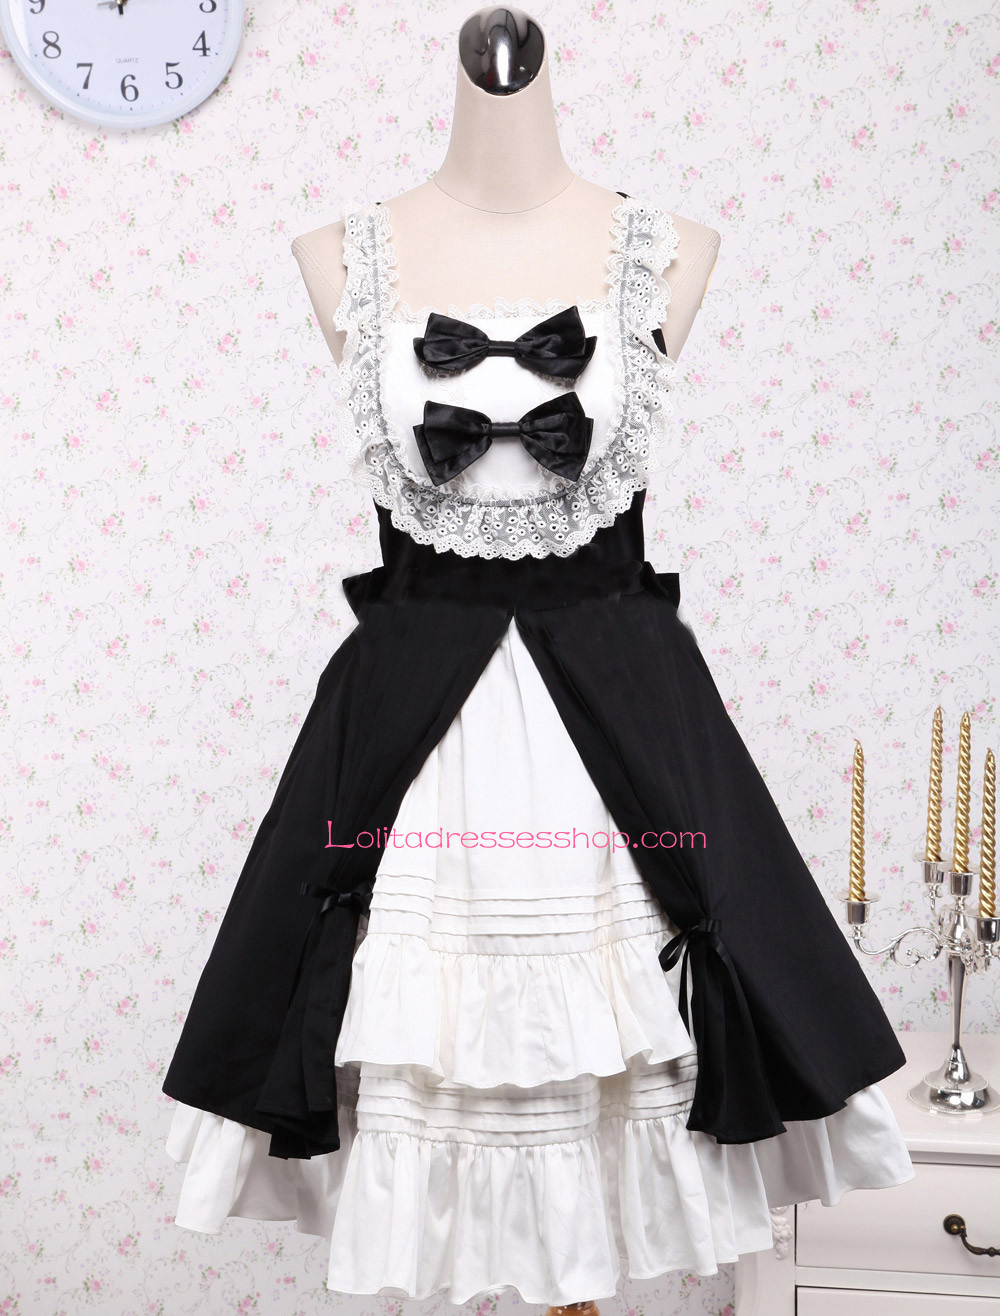 Black strap dress with white bow